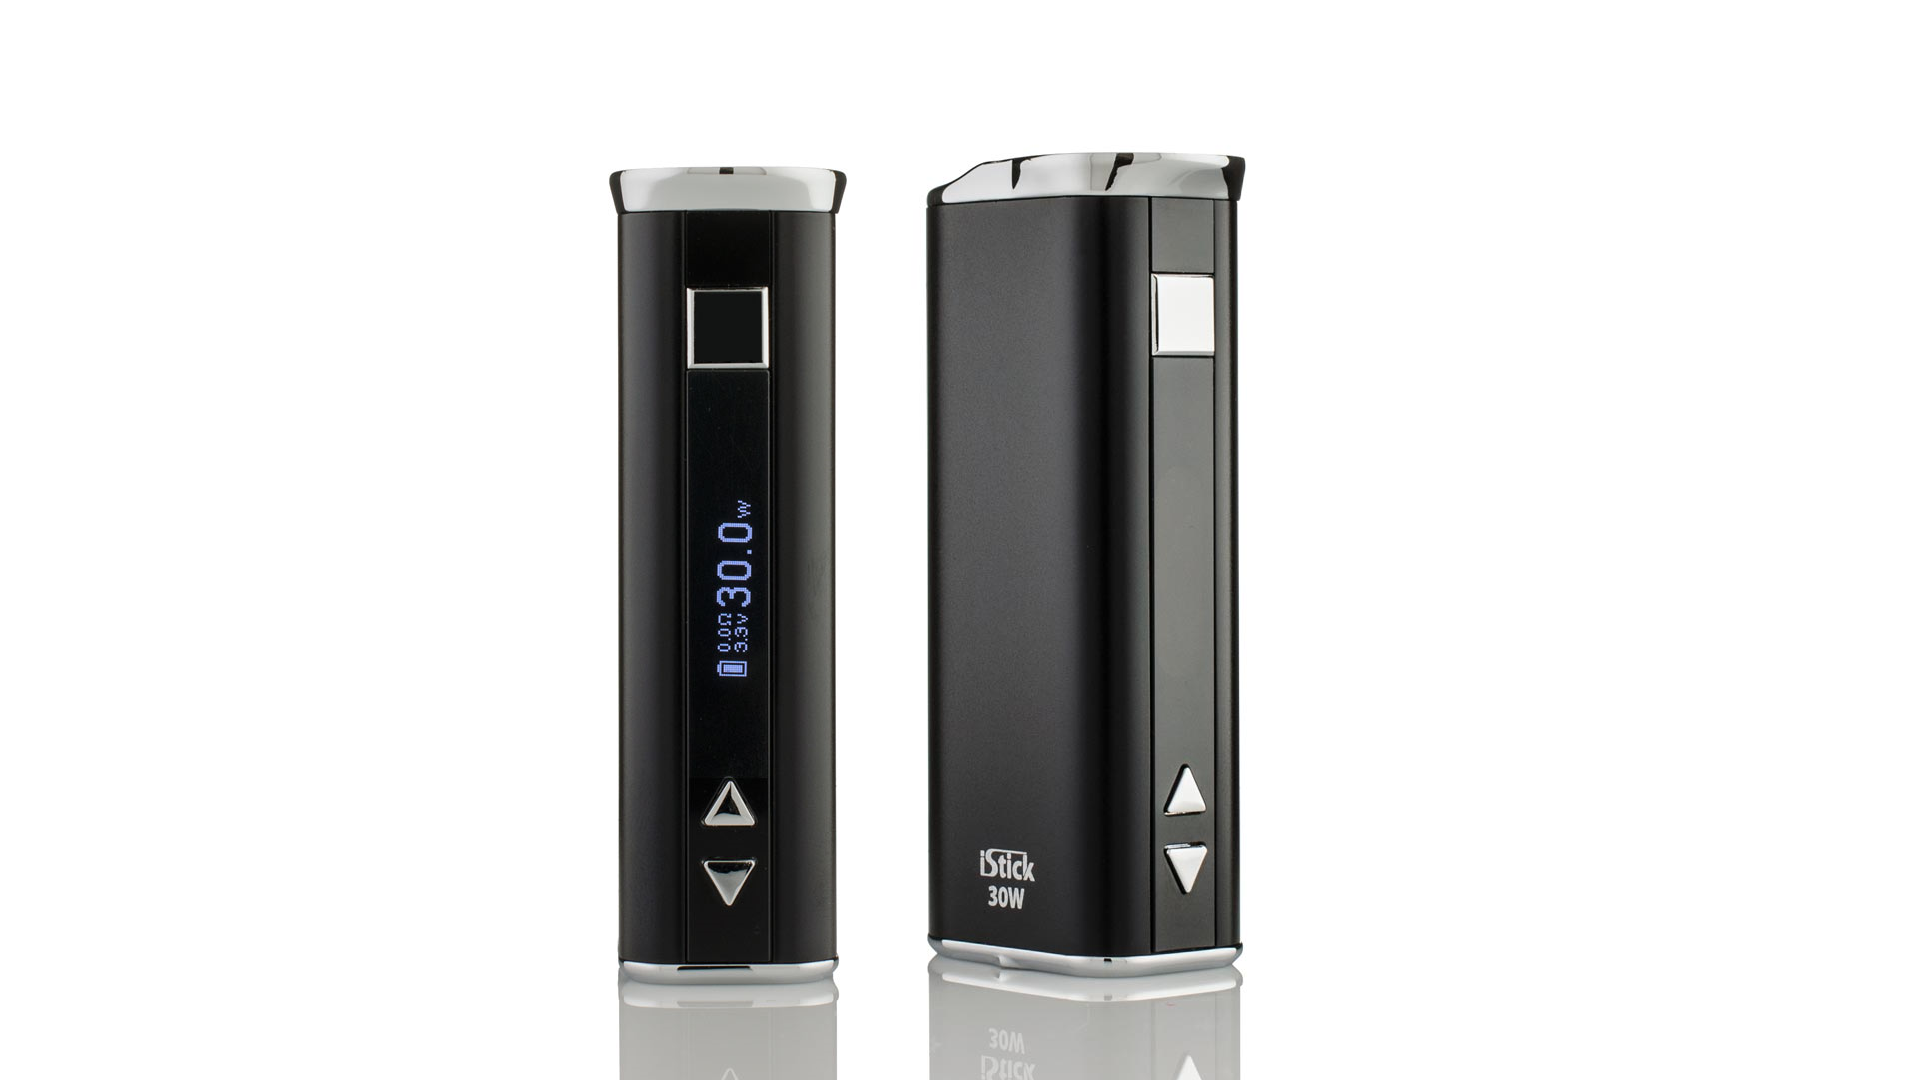 Image result for black 30w eleaf